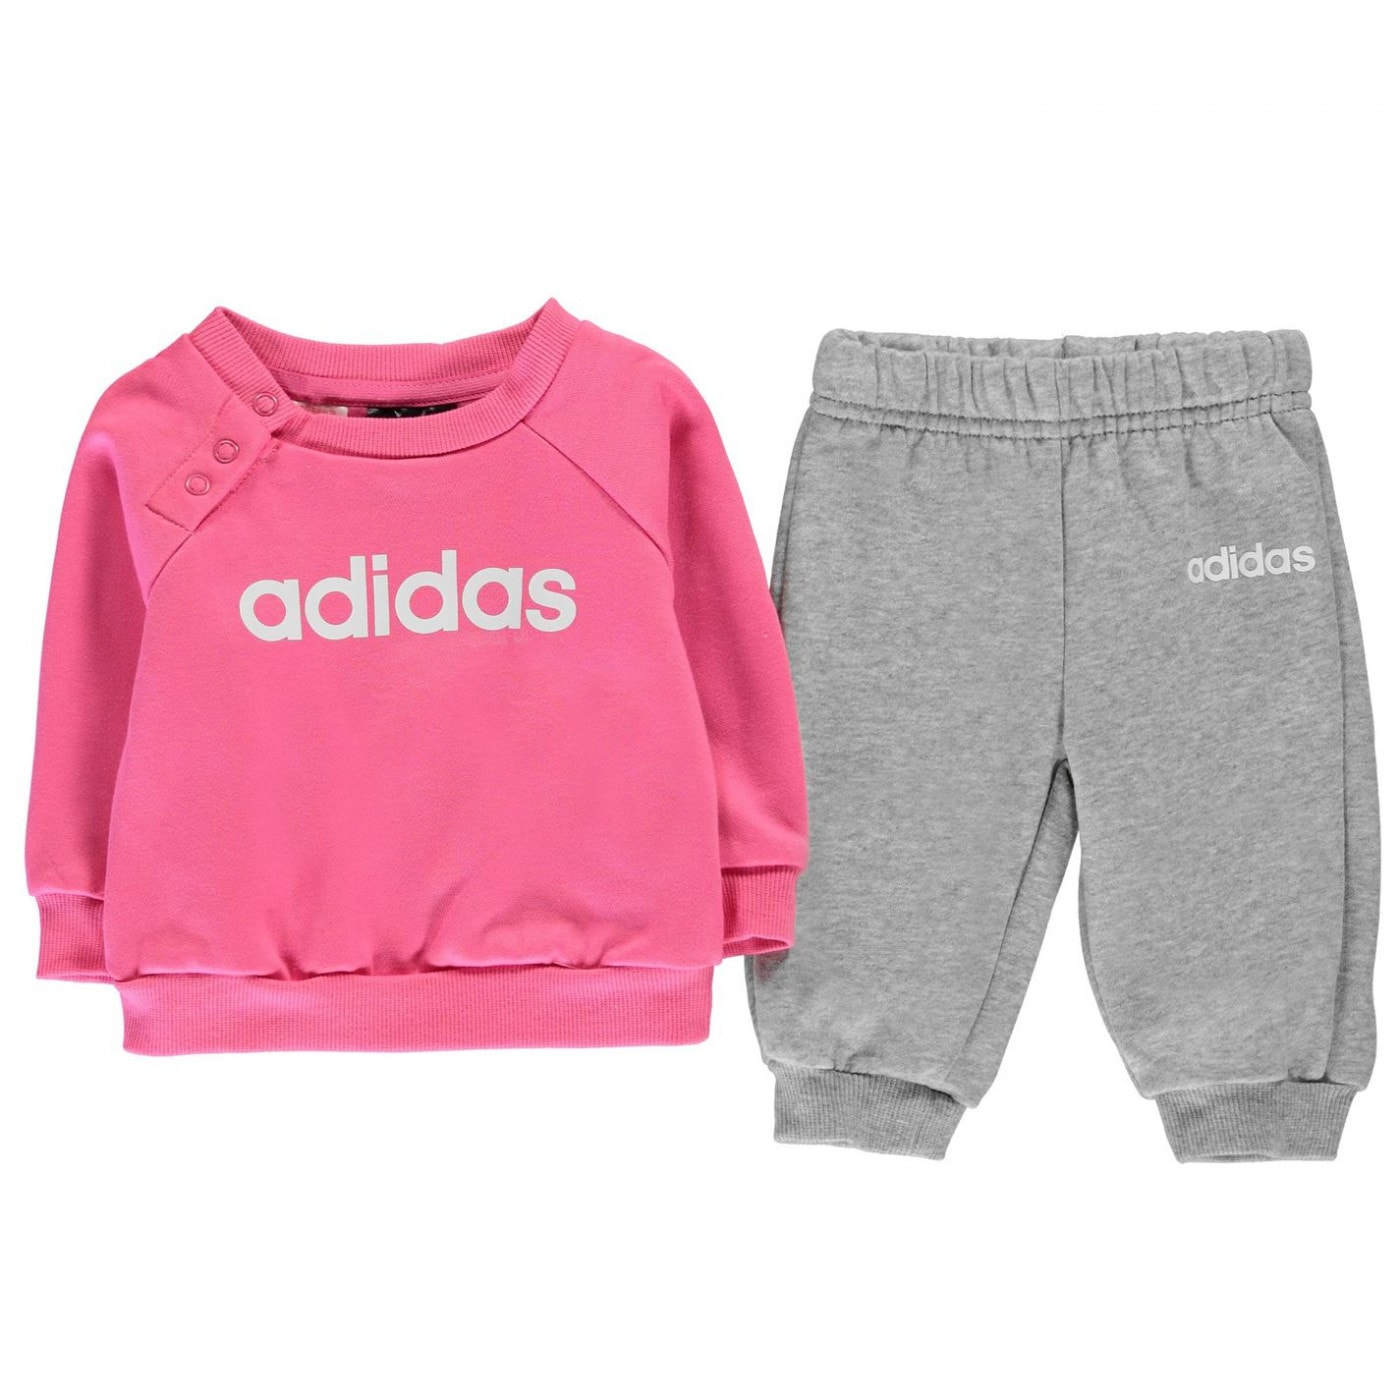 Adidas Jumper and Joggers Set Baby Girls